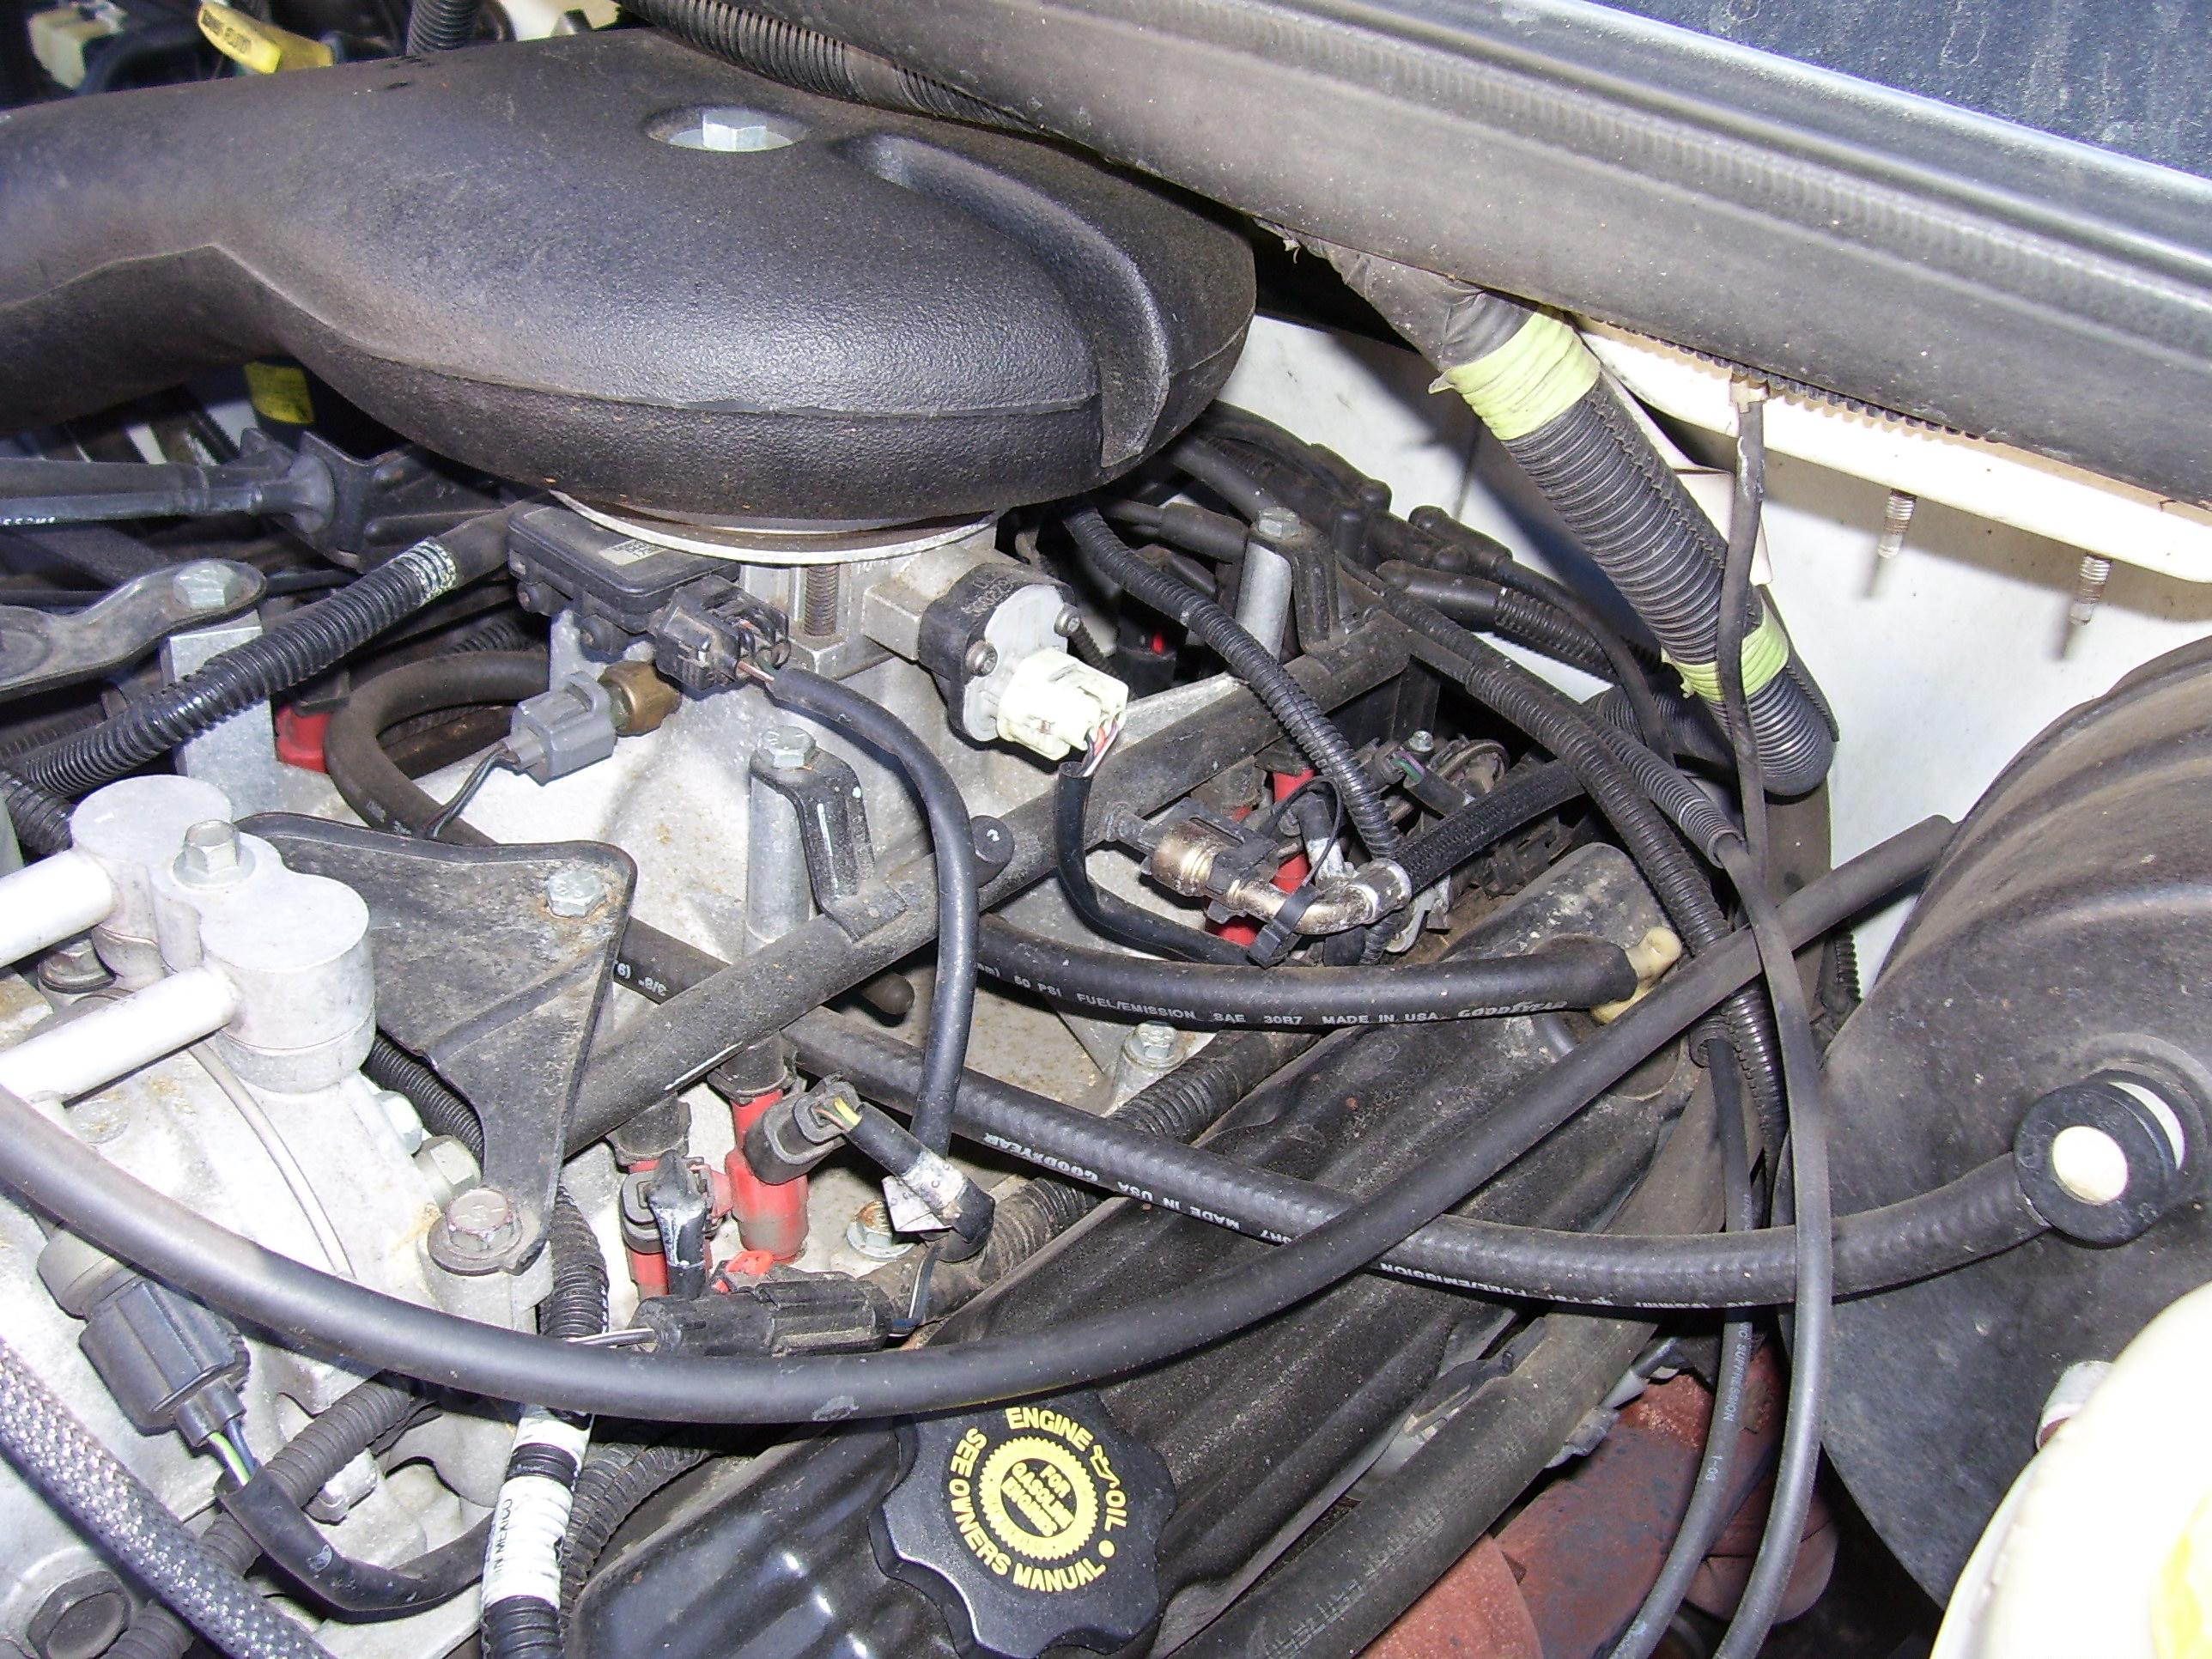 Dodge 318 Valve Diagram Wiring Library Ram 1500 Engine Can You Give Me A On How To Replace The Bypass Hose 96 Specifications